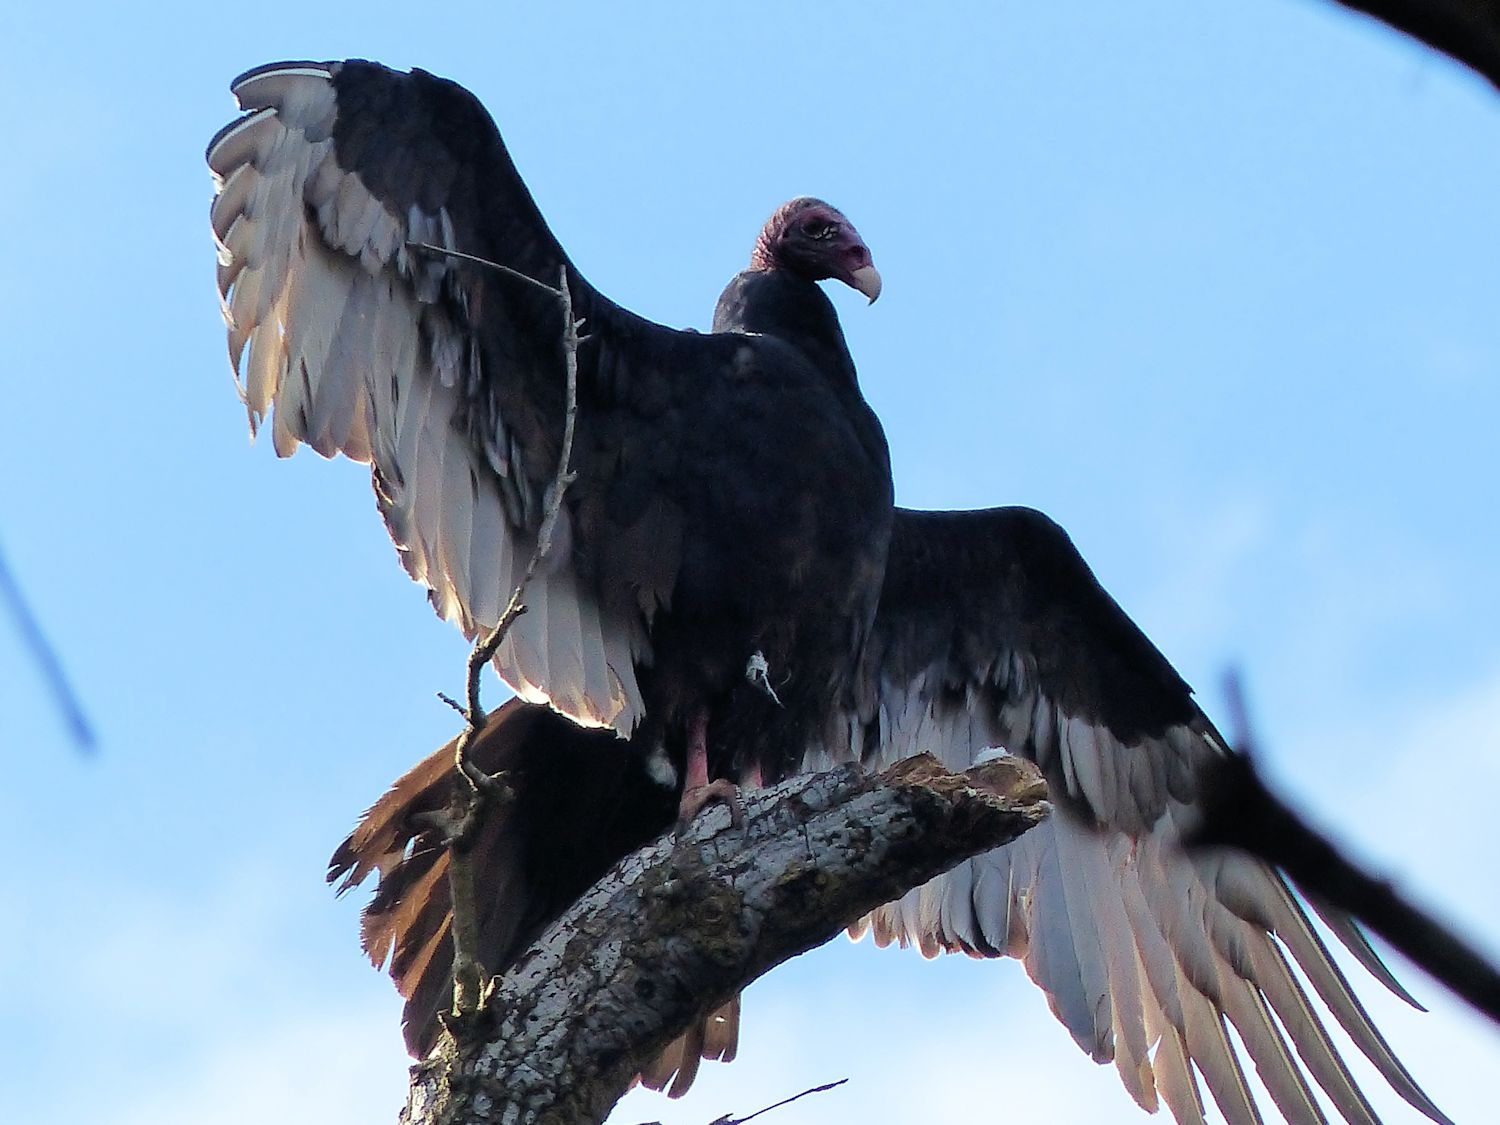 Turkey Vulture hanging with his cousins, the Black Vultures